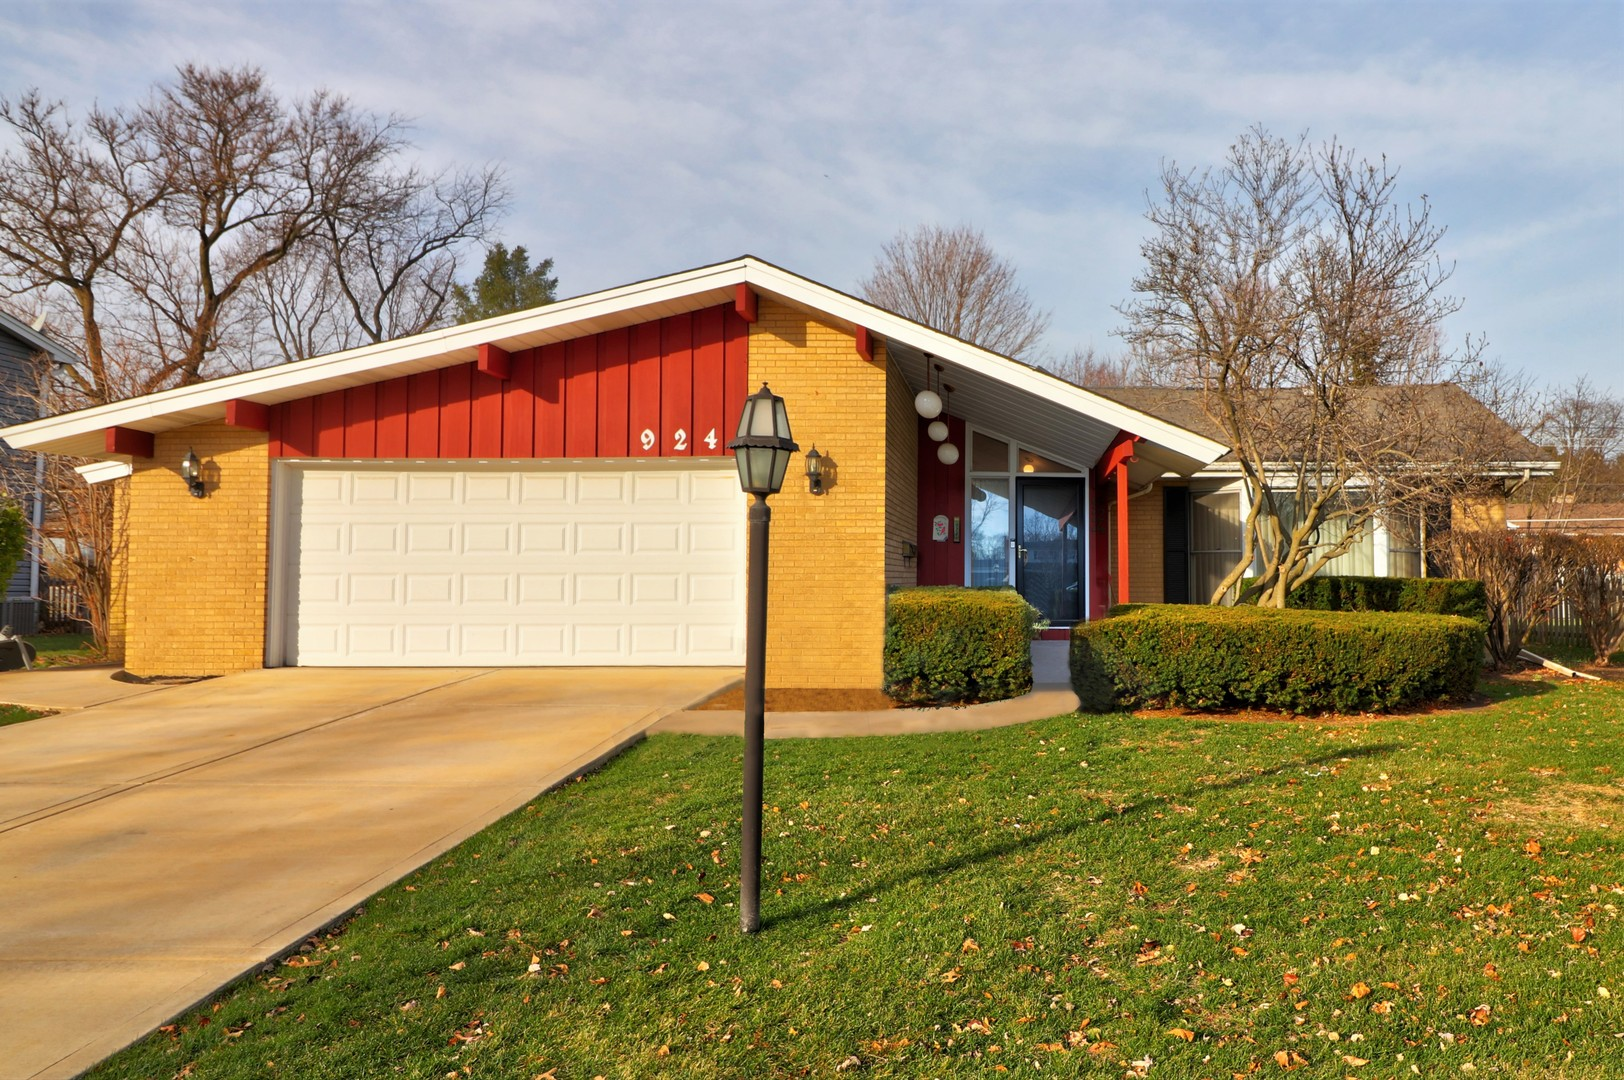 Photo for 924 61st Street, Downers Grove, IL 60516 (MLS # 10938364)